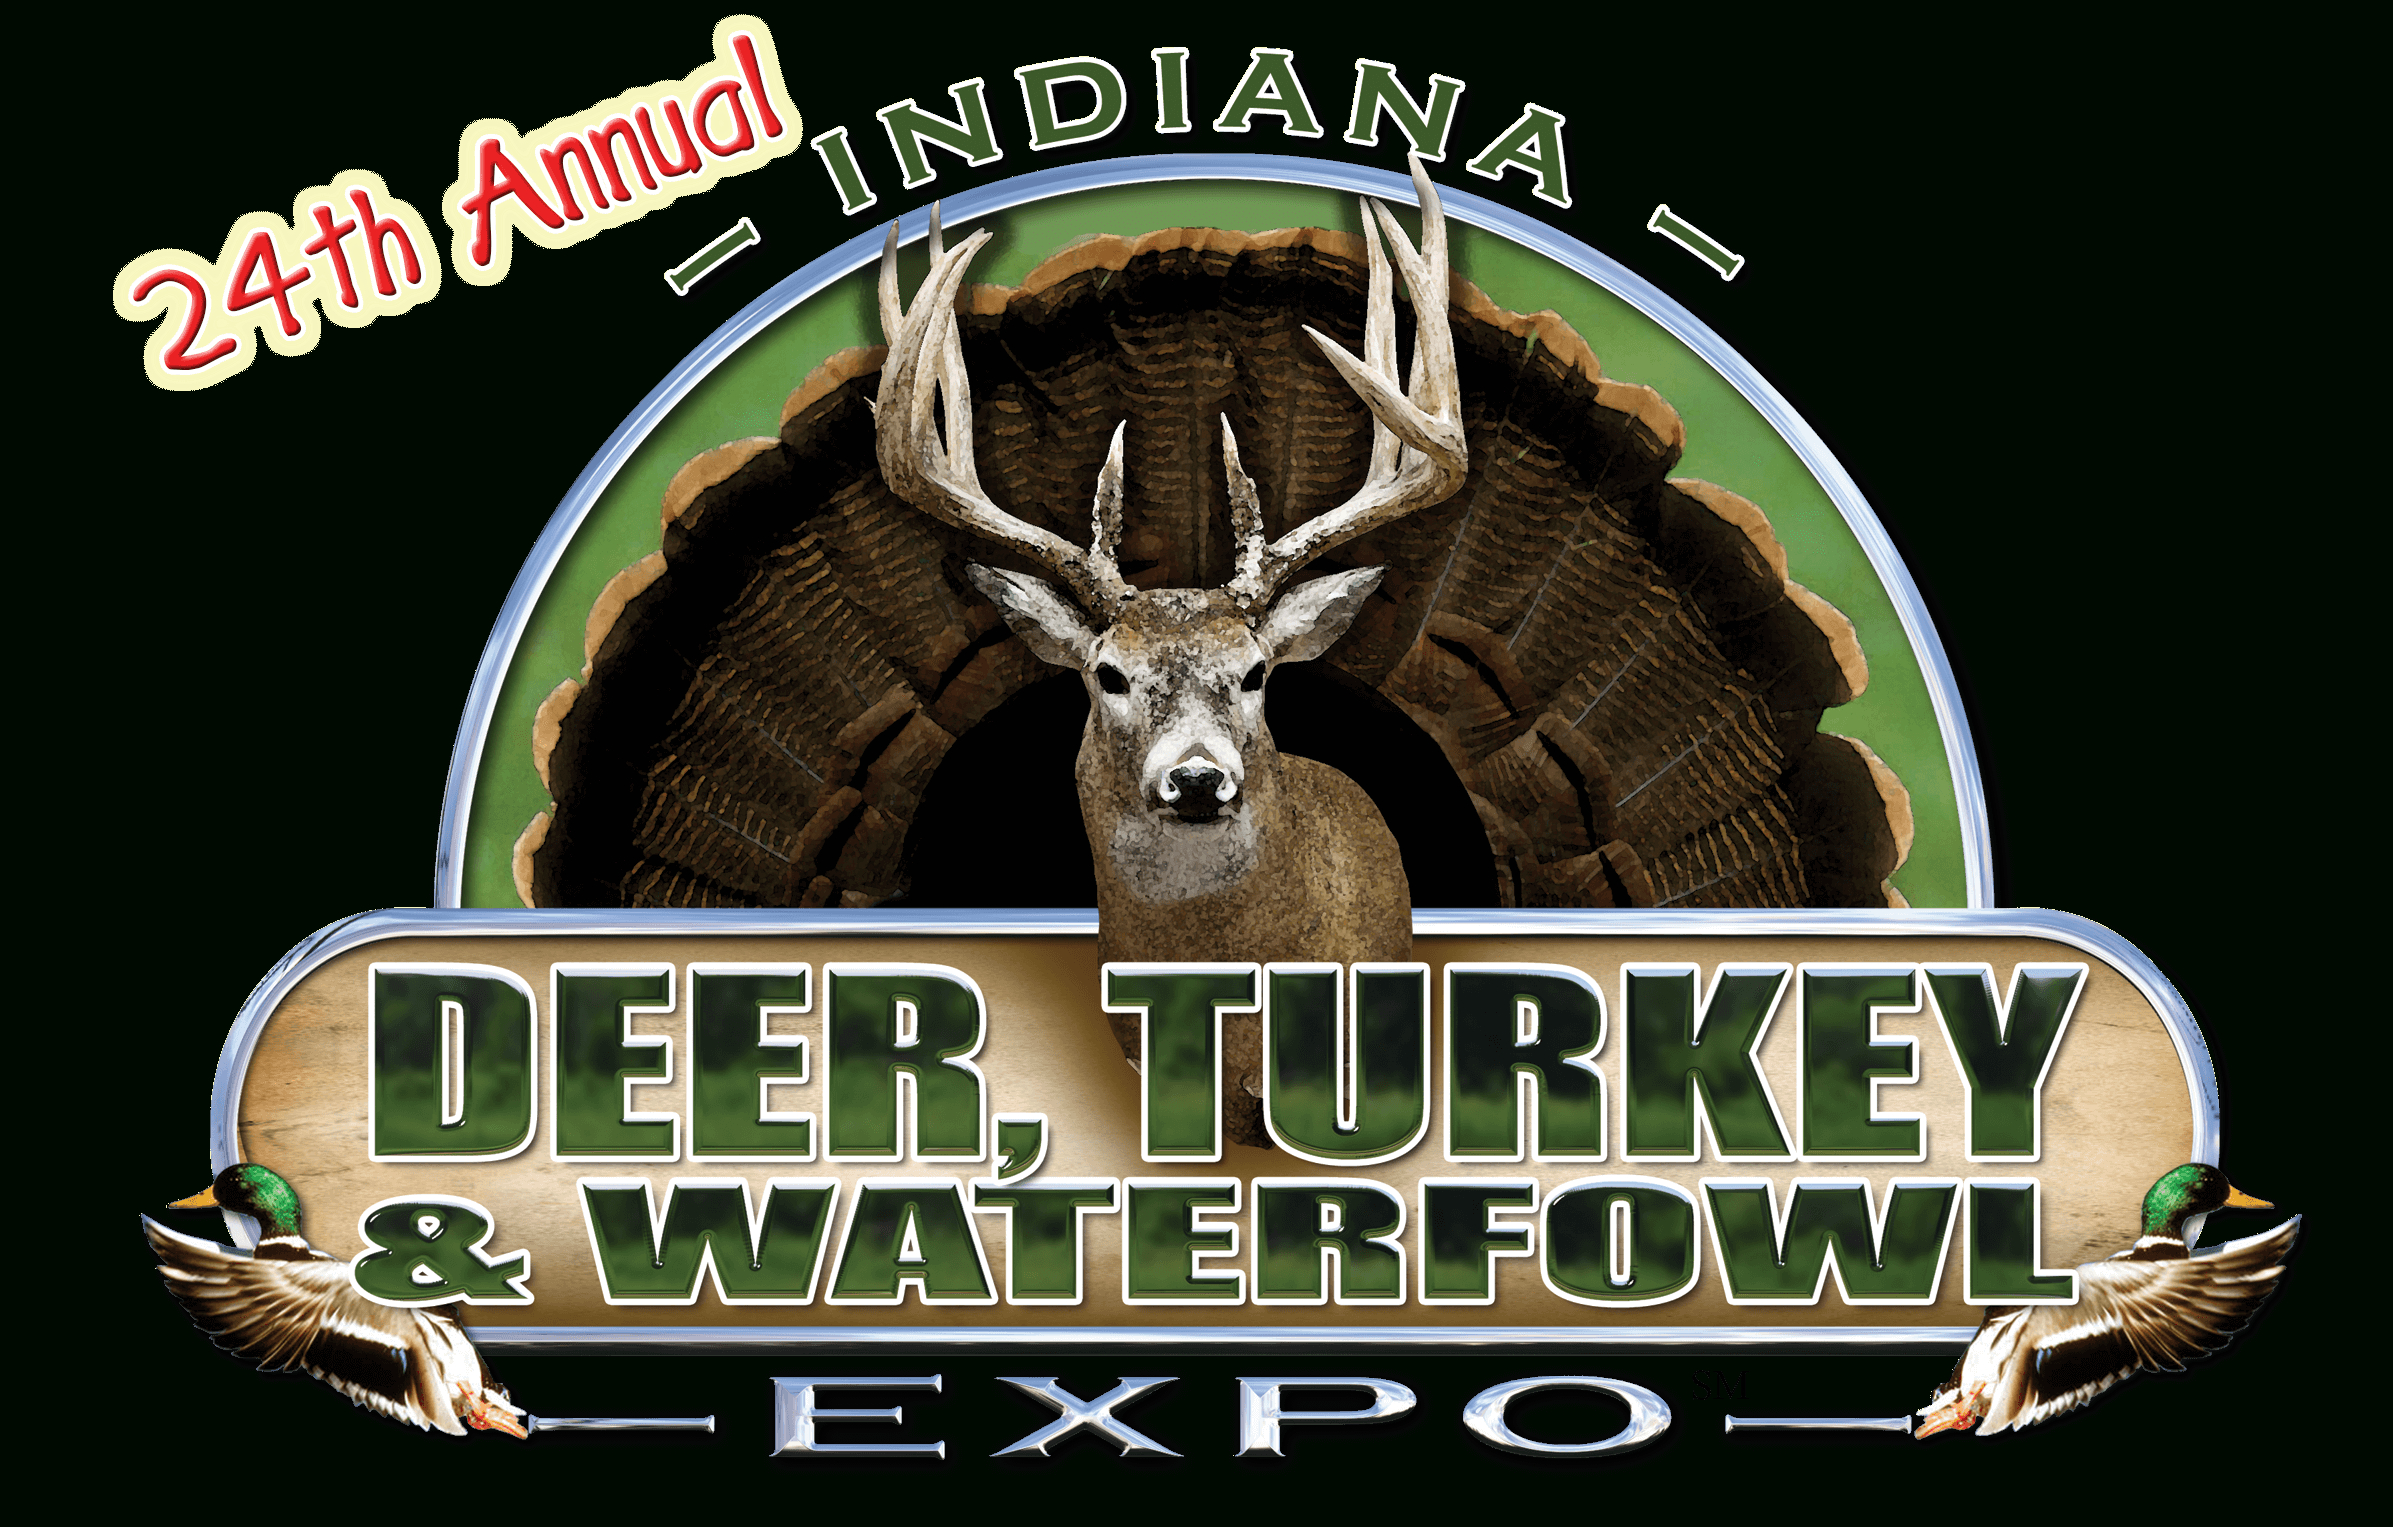 Indiana Deer, Turkey & Waterfowl Expo for Deer Season 2021 Indiana